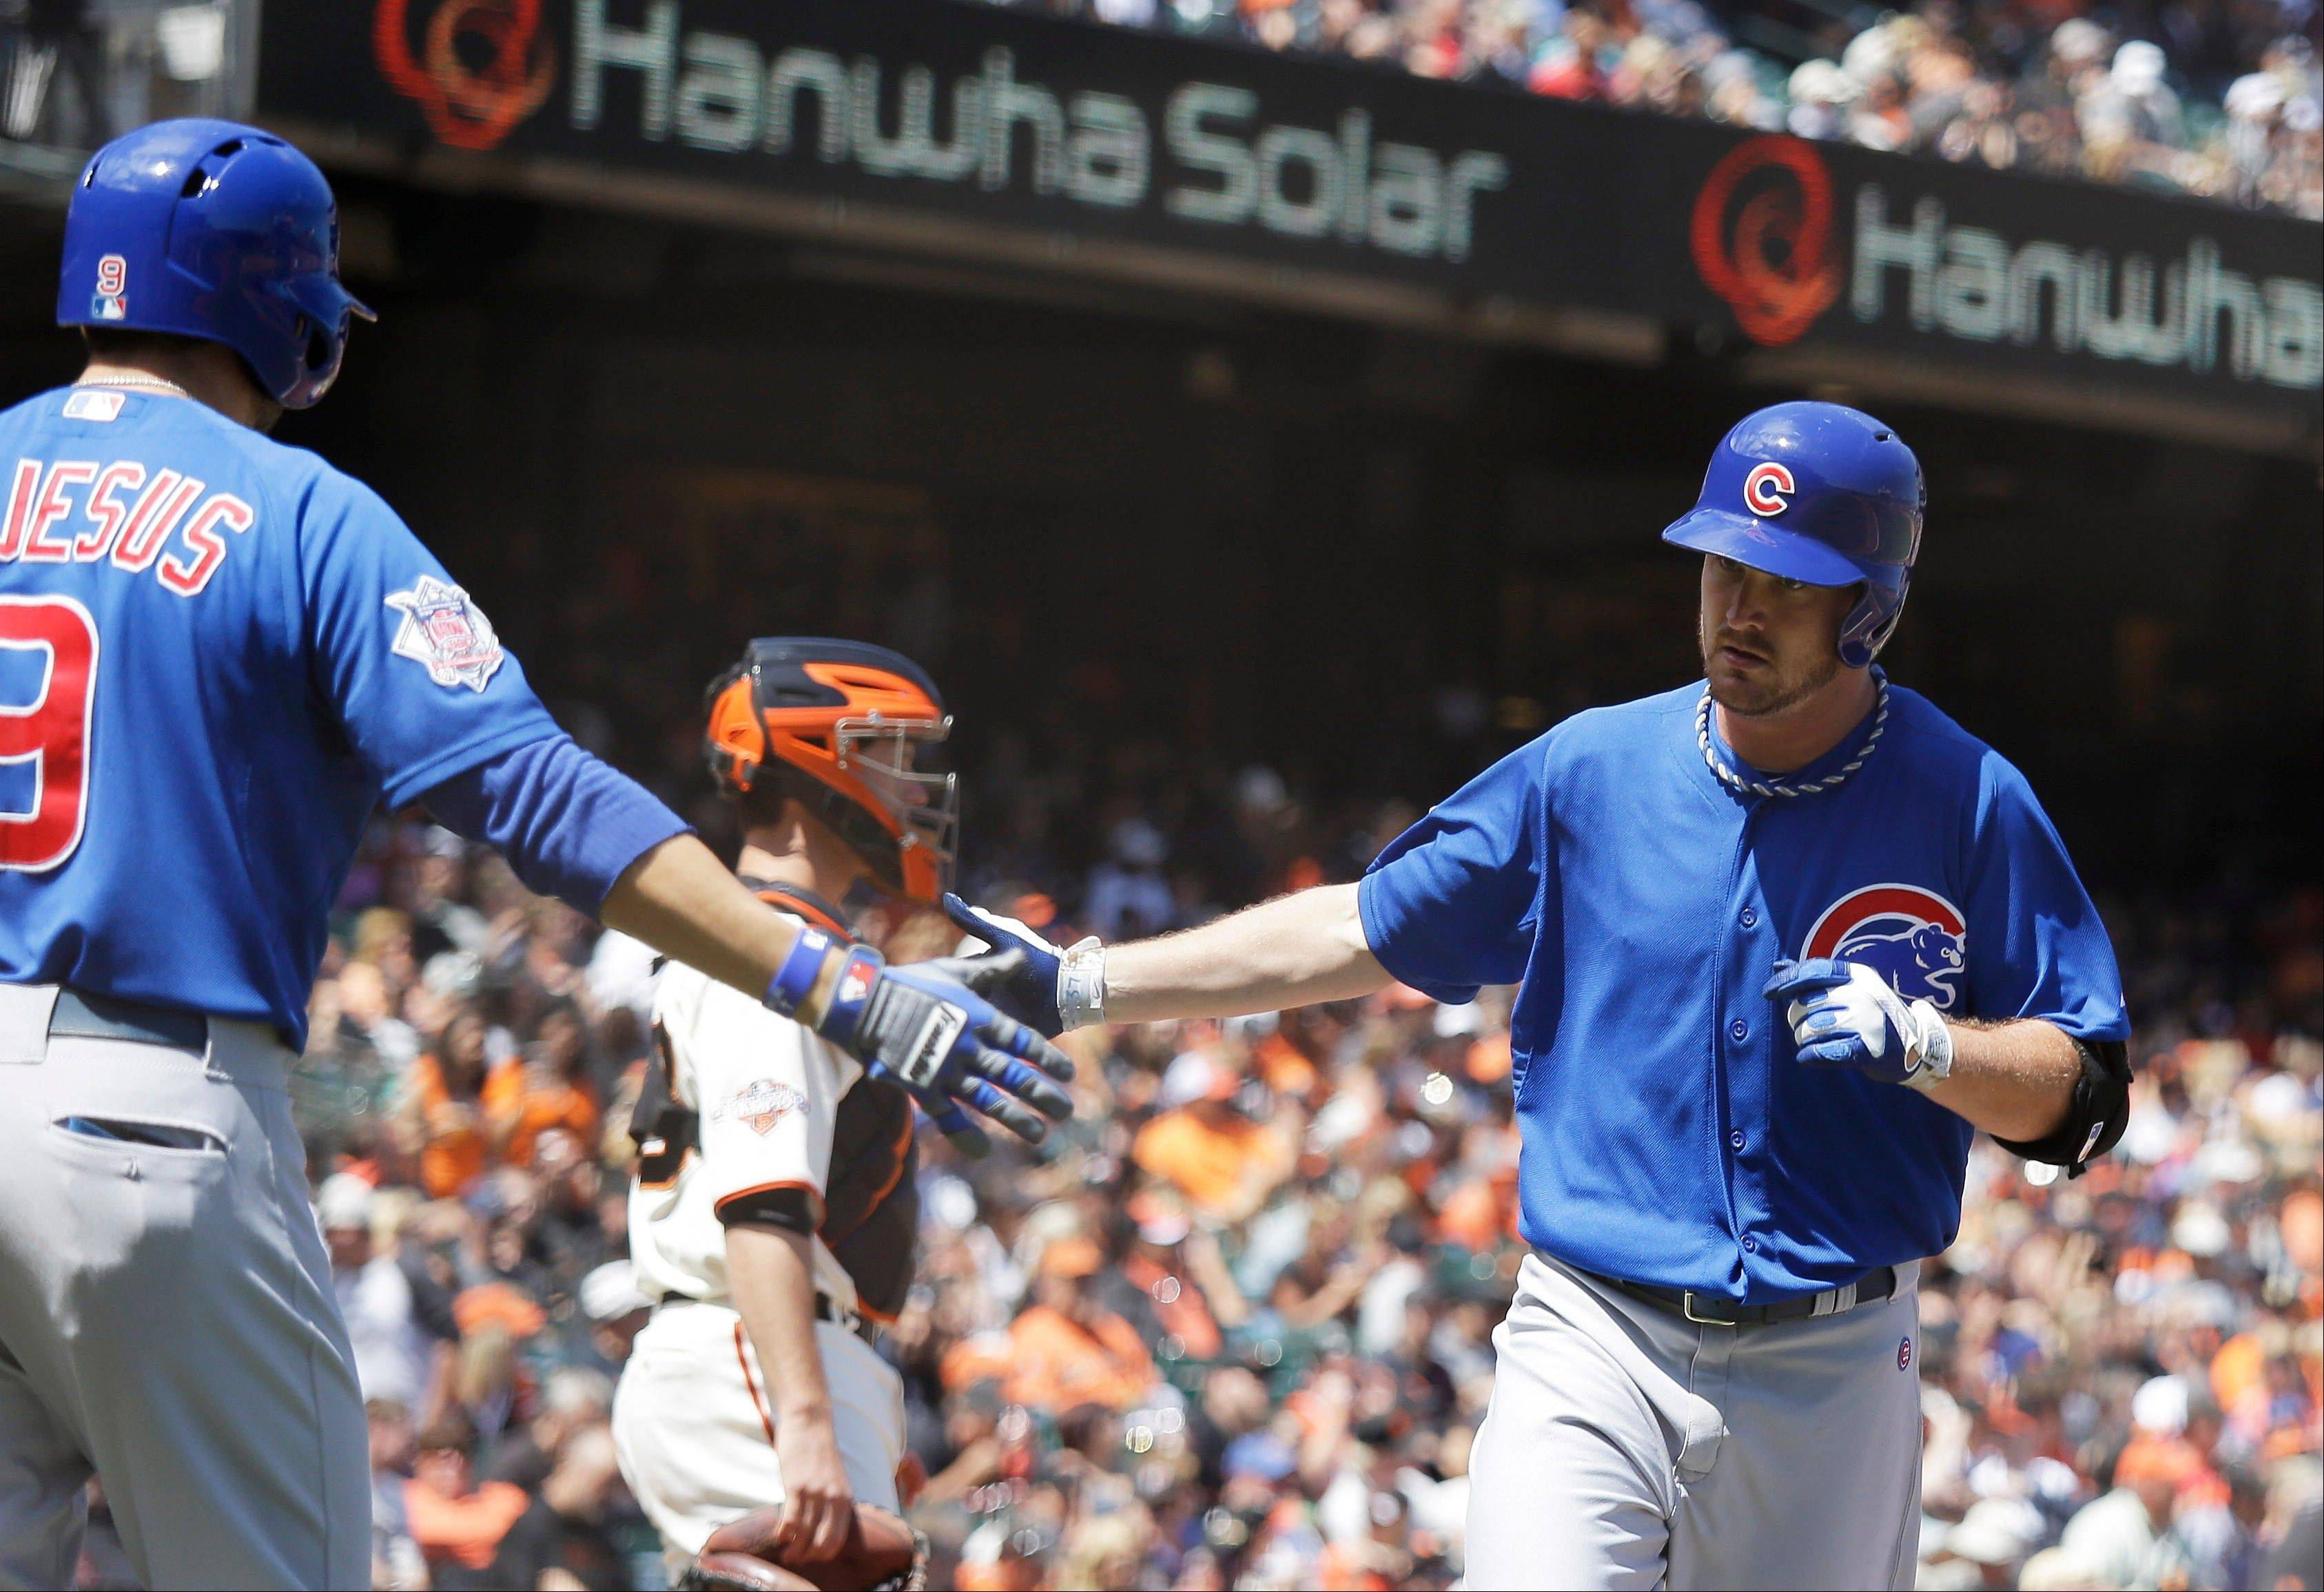 Cubs pitcher Travis Wood, right, is greeted by teammate David DeJesus, left, after hitting a home run off San Francisco Giants starting pitcher Tim Lincecum during Sunday's fifth inning.